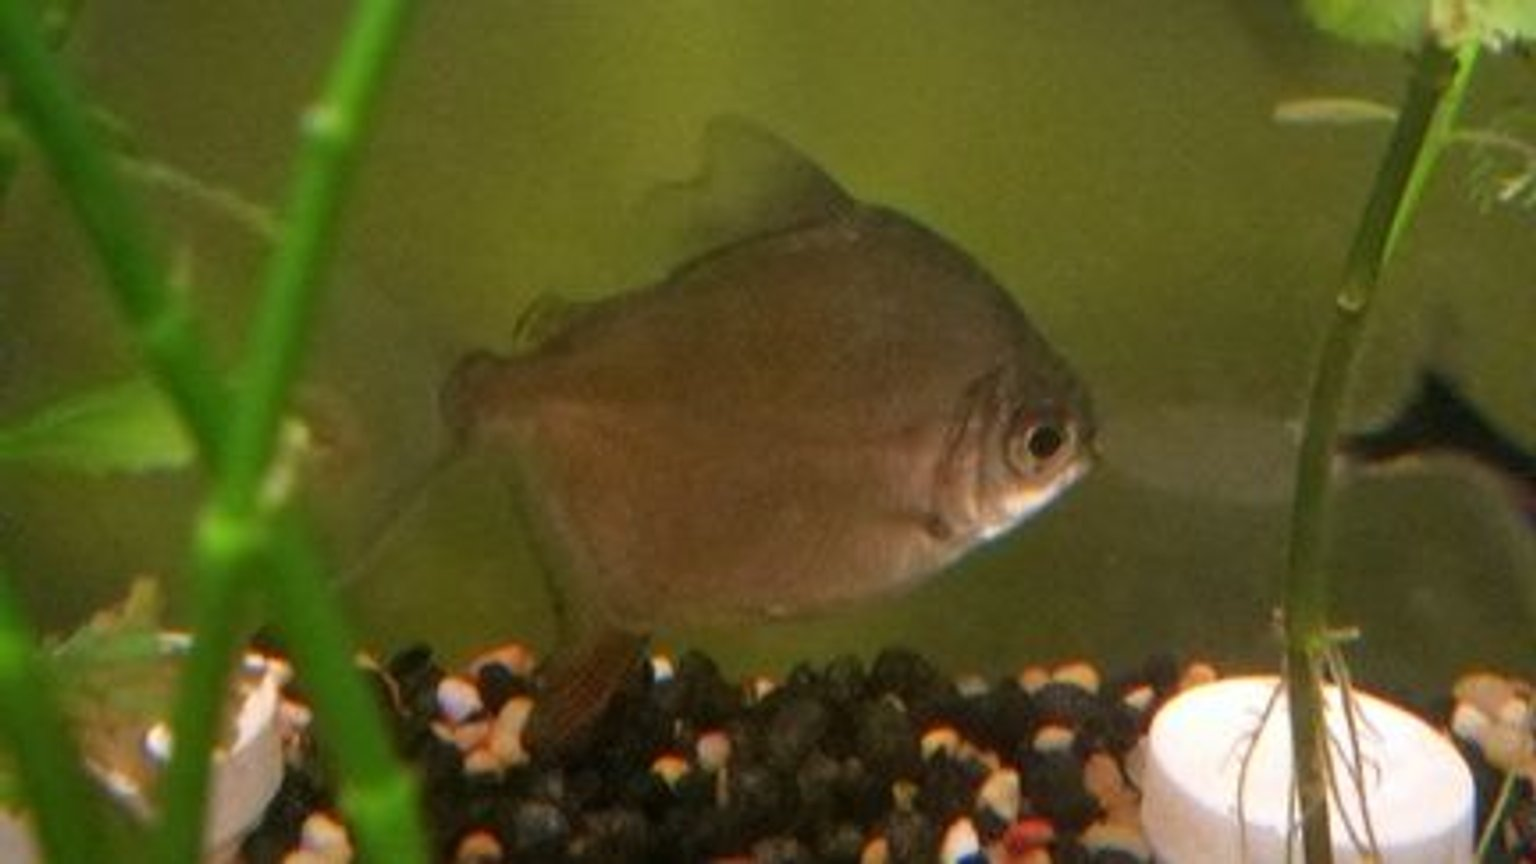 freshwater fish - metynnis argenteus - silver dollar stocking in 39 gallons tank - Red Hook II